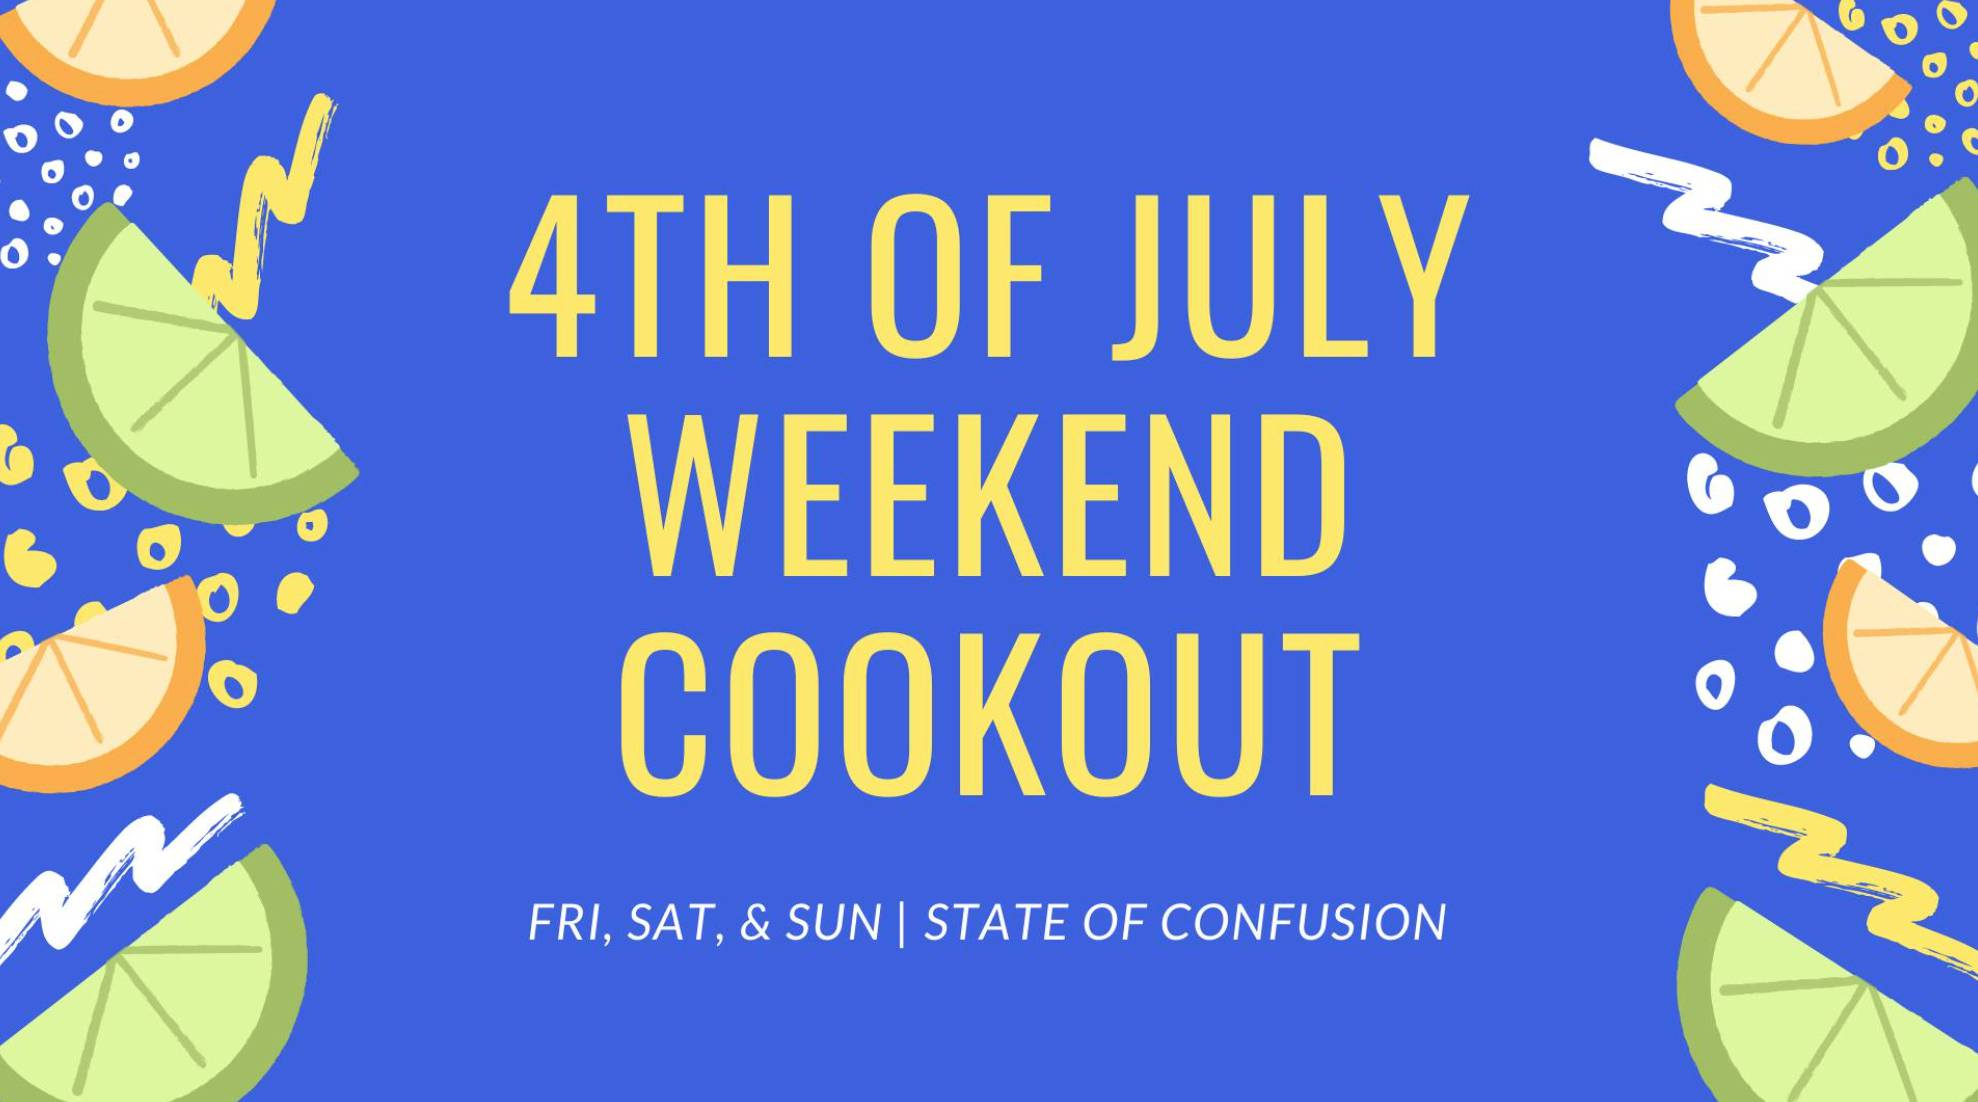 4th of July Weekend Cookout